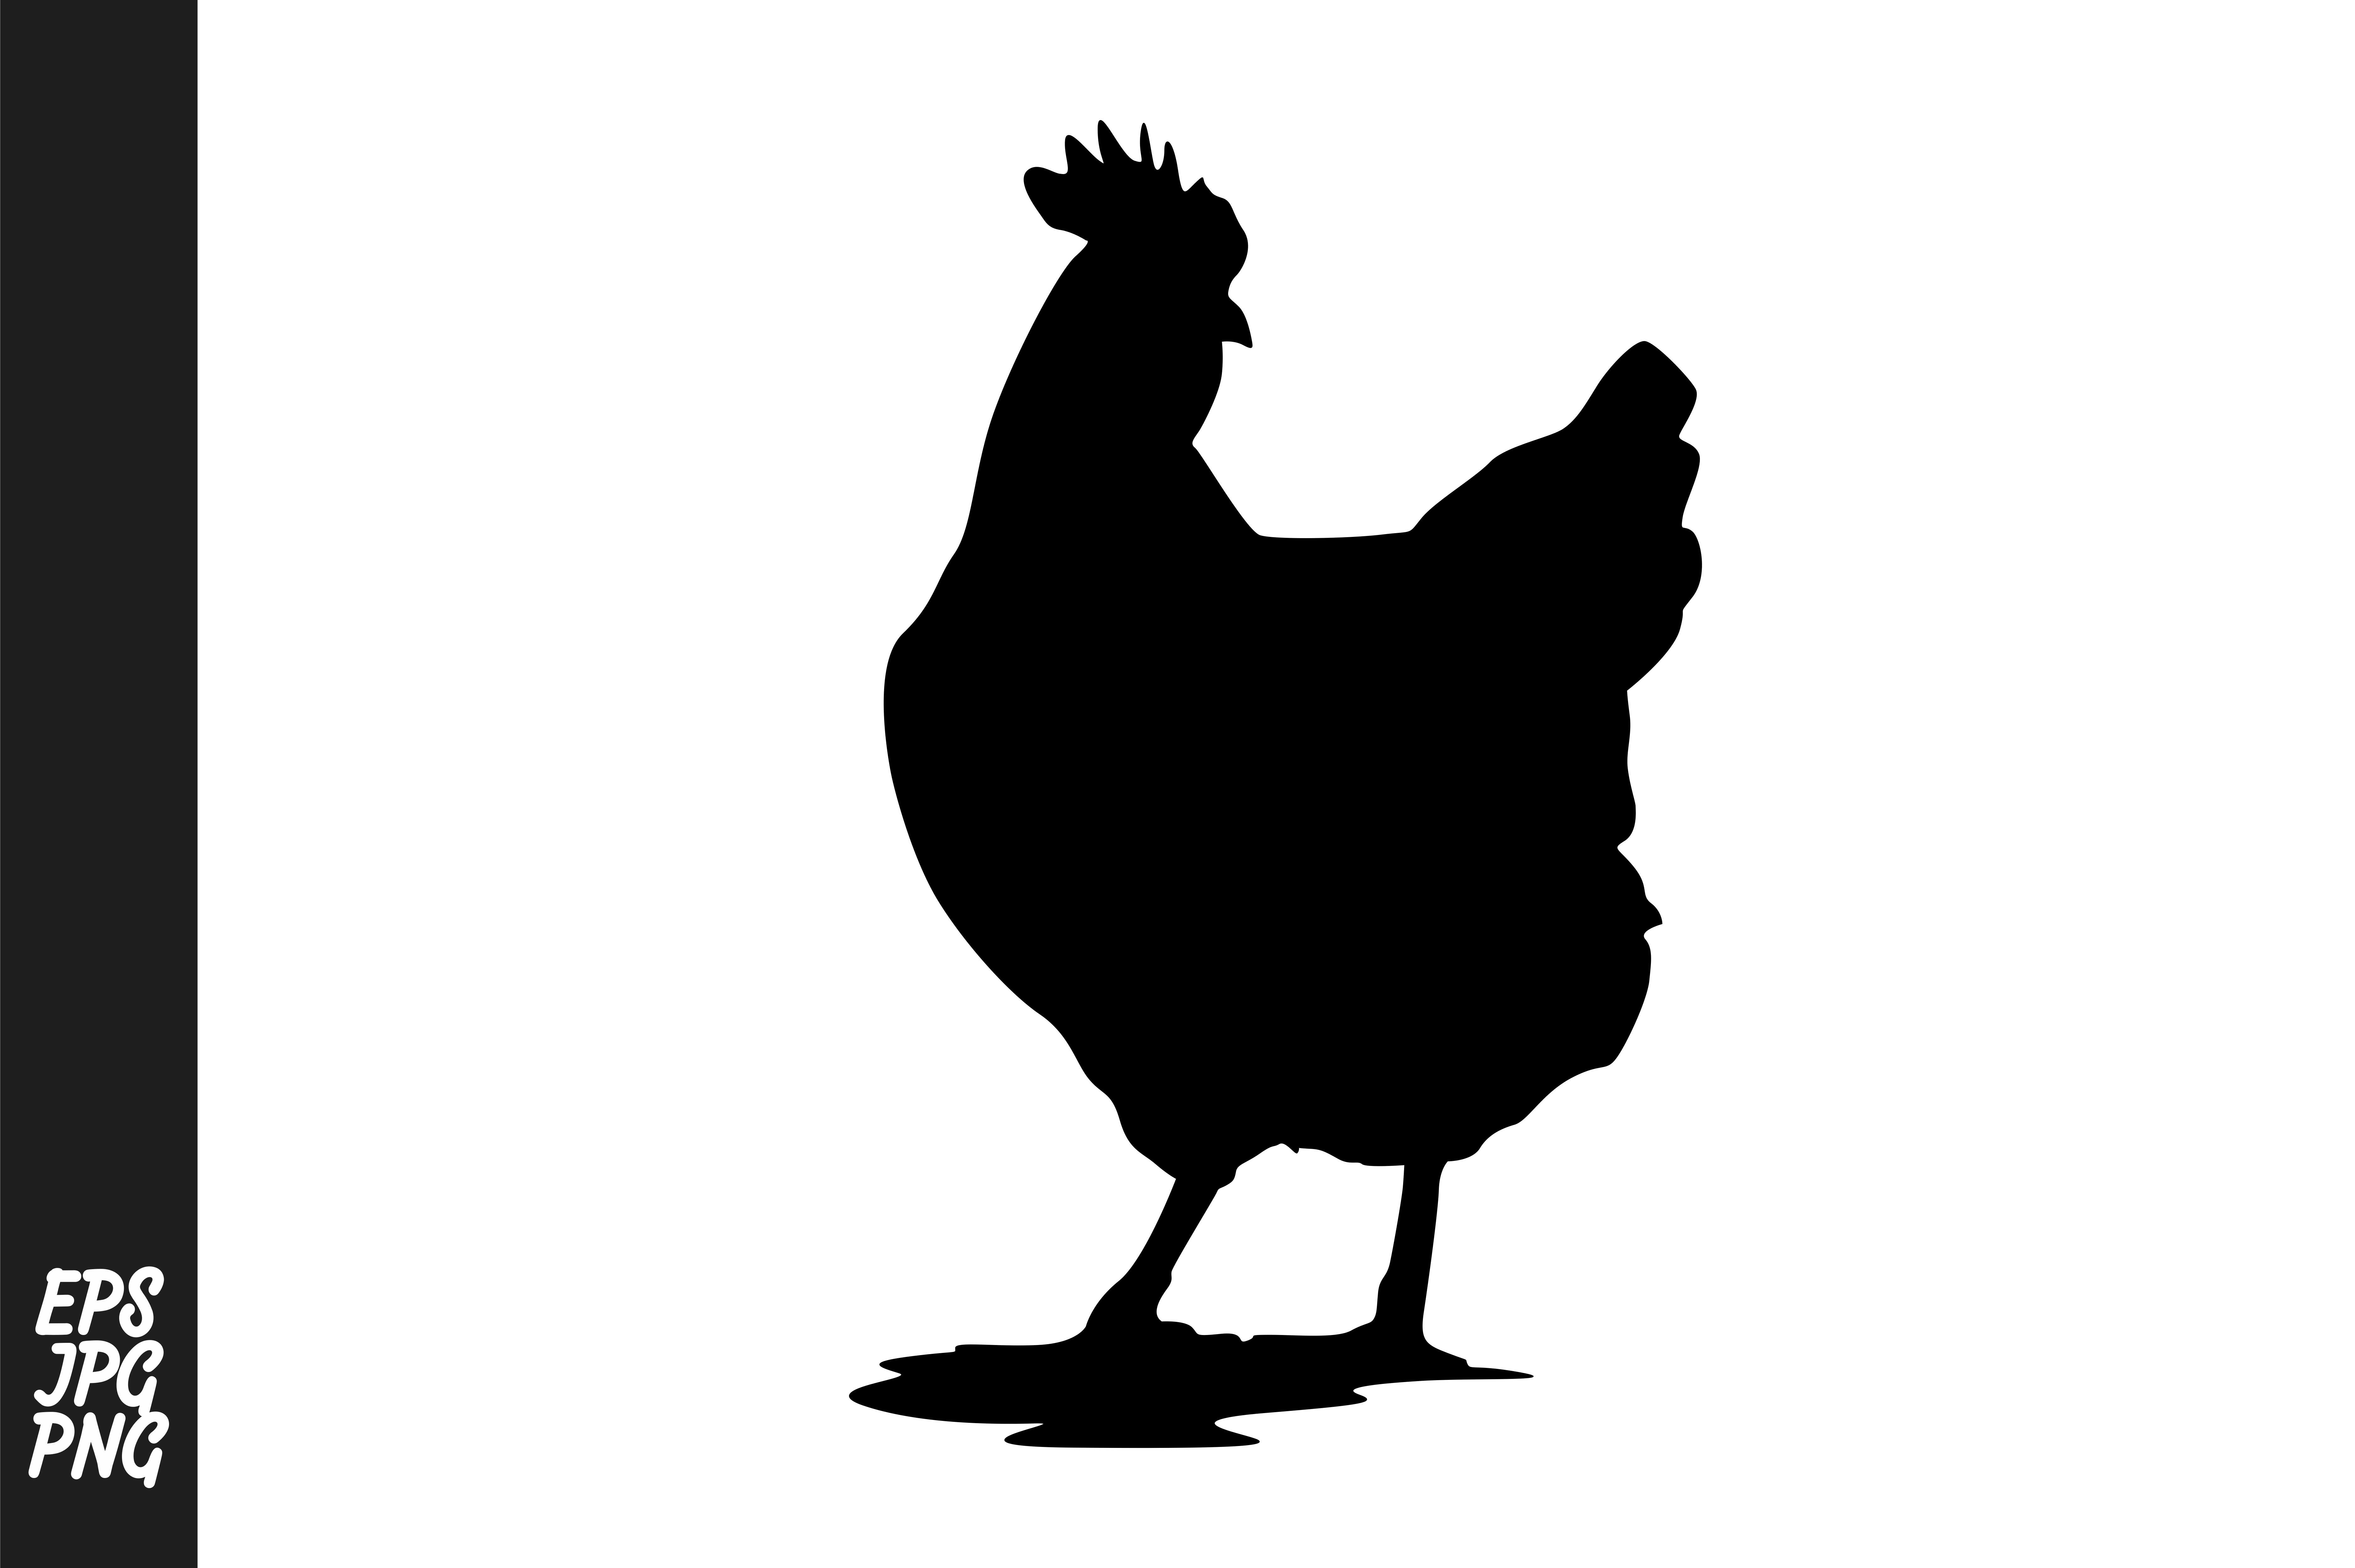 Download Free Chicken Silhouette Vector Graphic By Arief Sapta Adjie for Cricut Explore, Silhouette and other cutting machines.